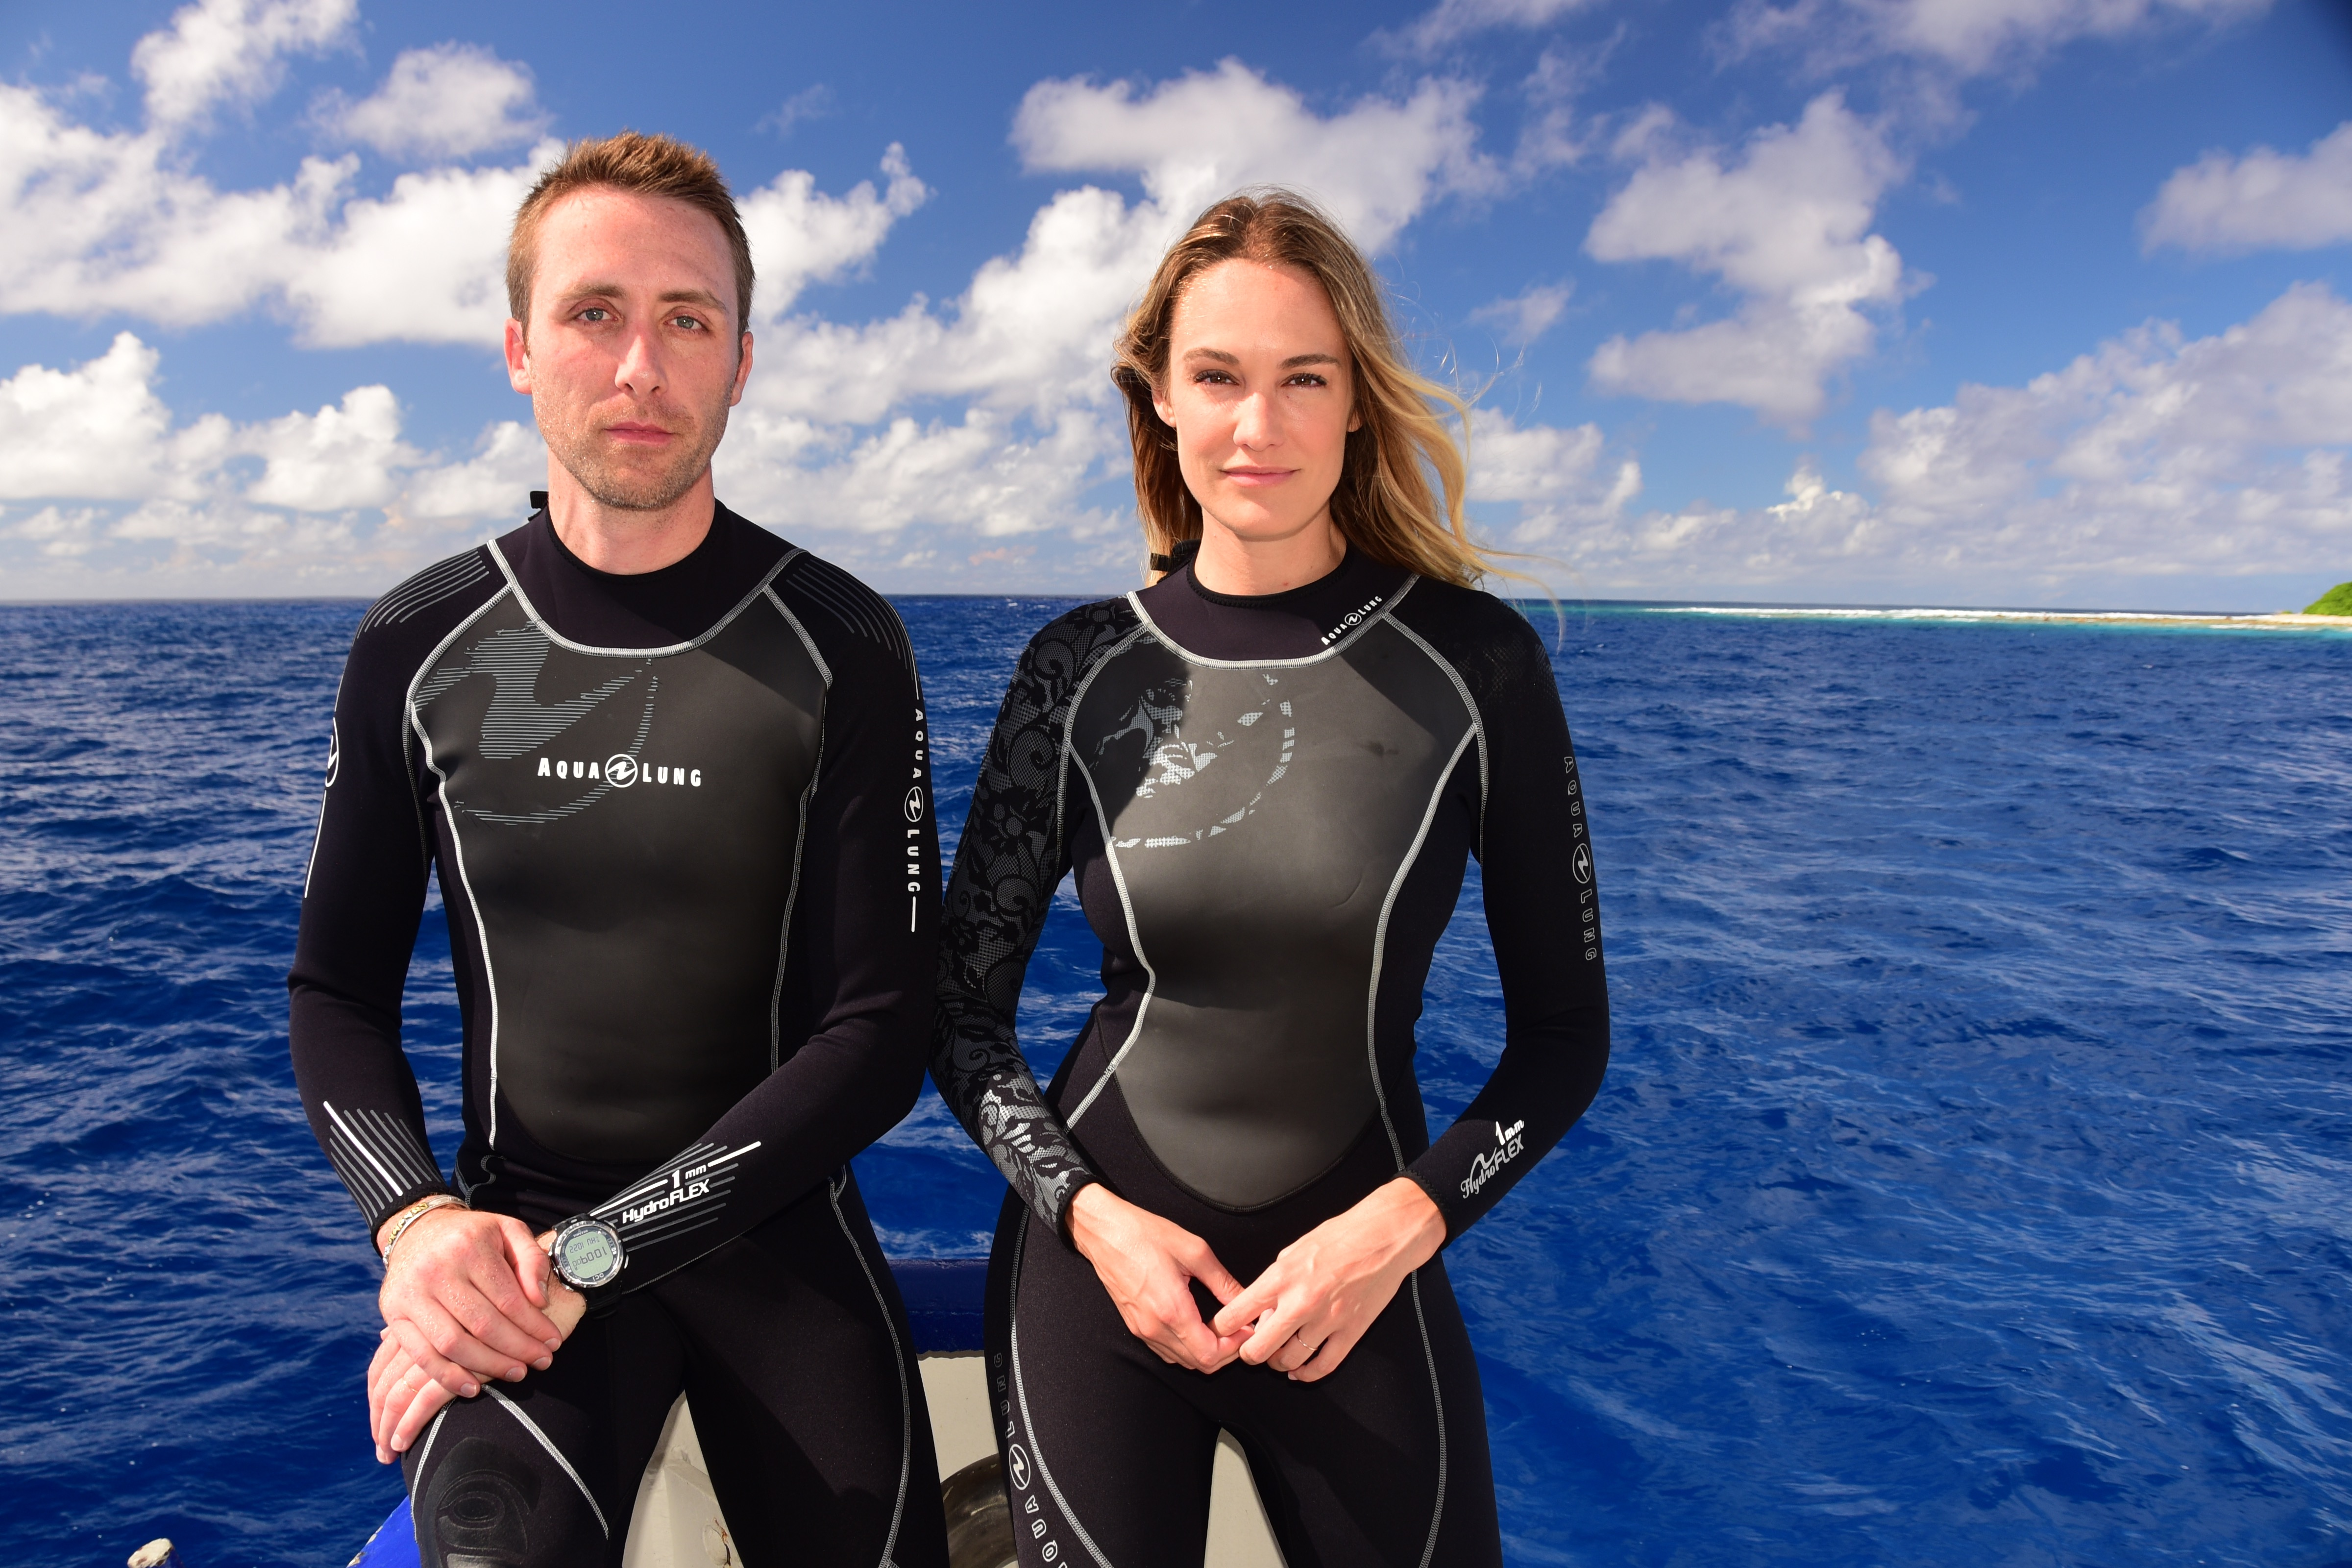 Philippe and Ashlan Costeau in wet suits on a boat.